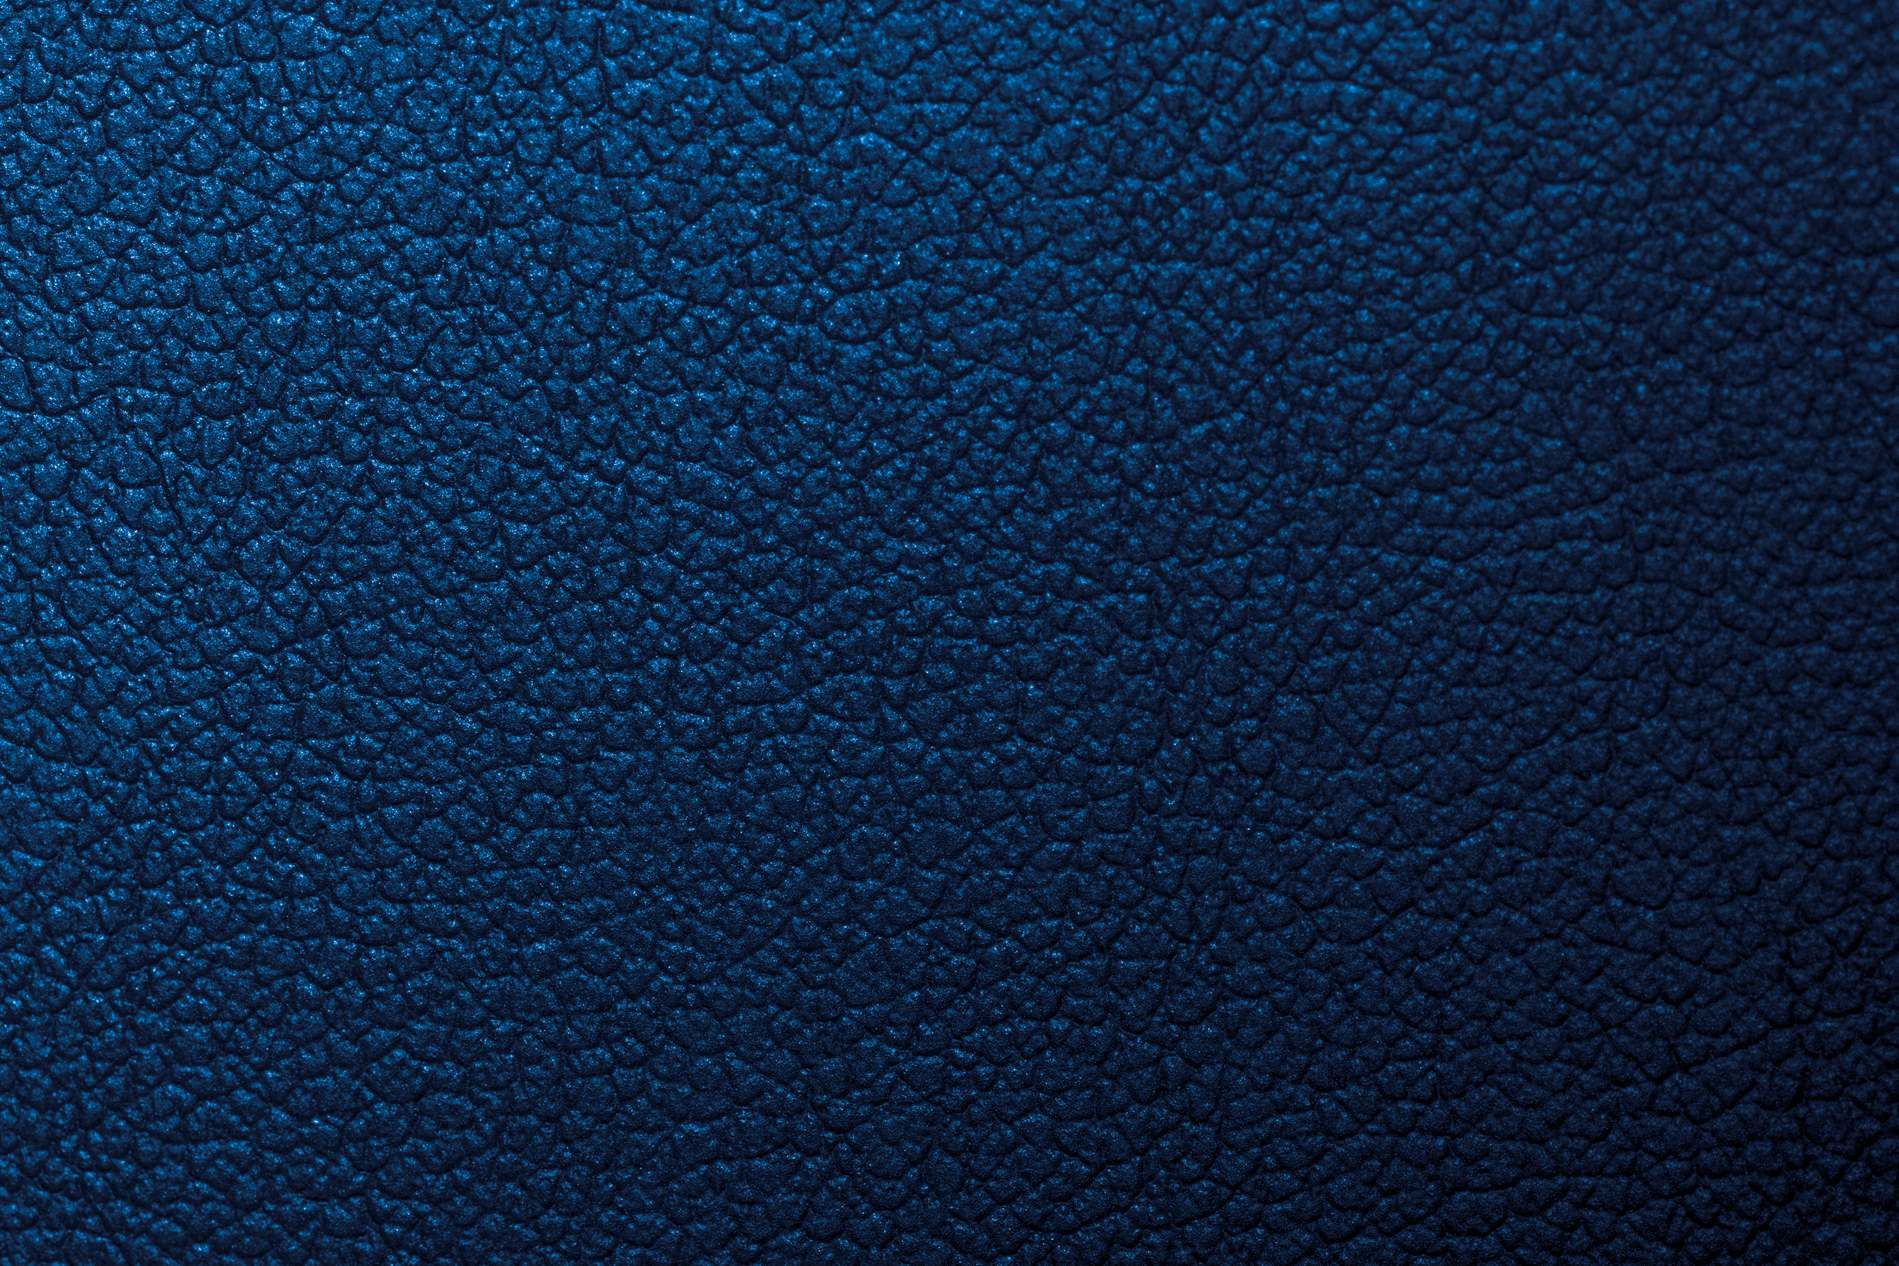 Blue Artificial Leather Texture Photohdx